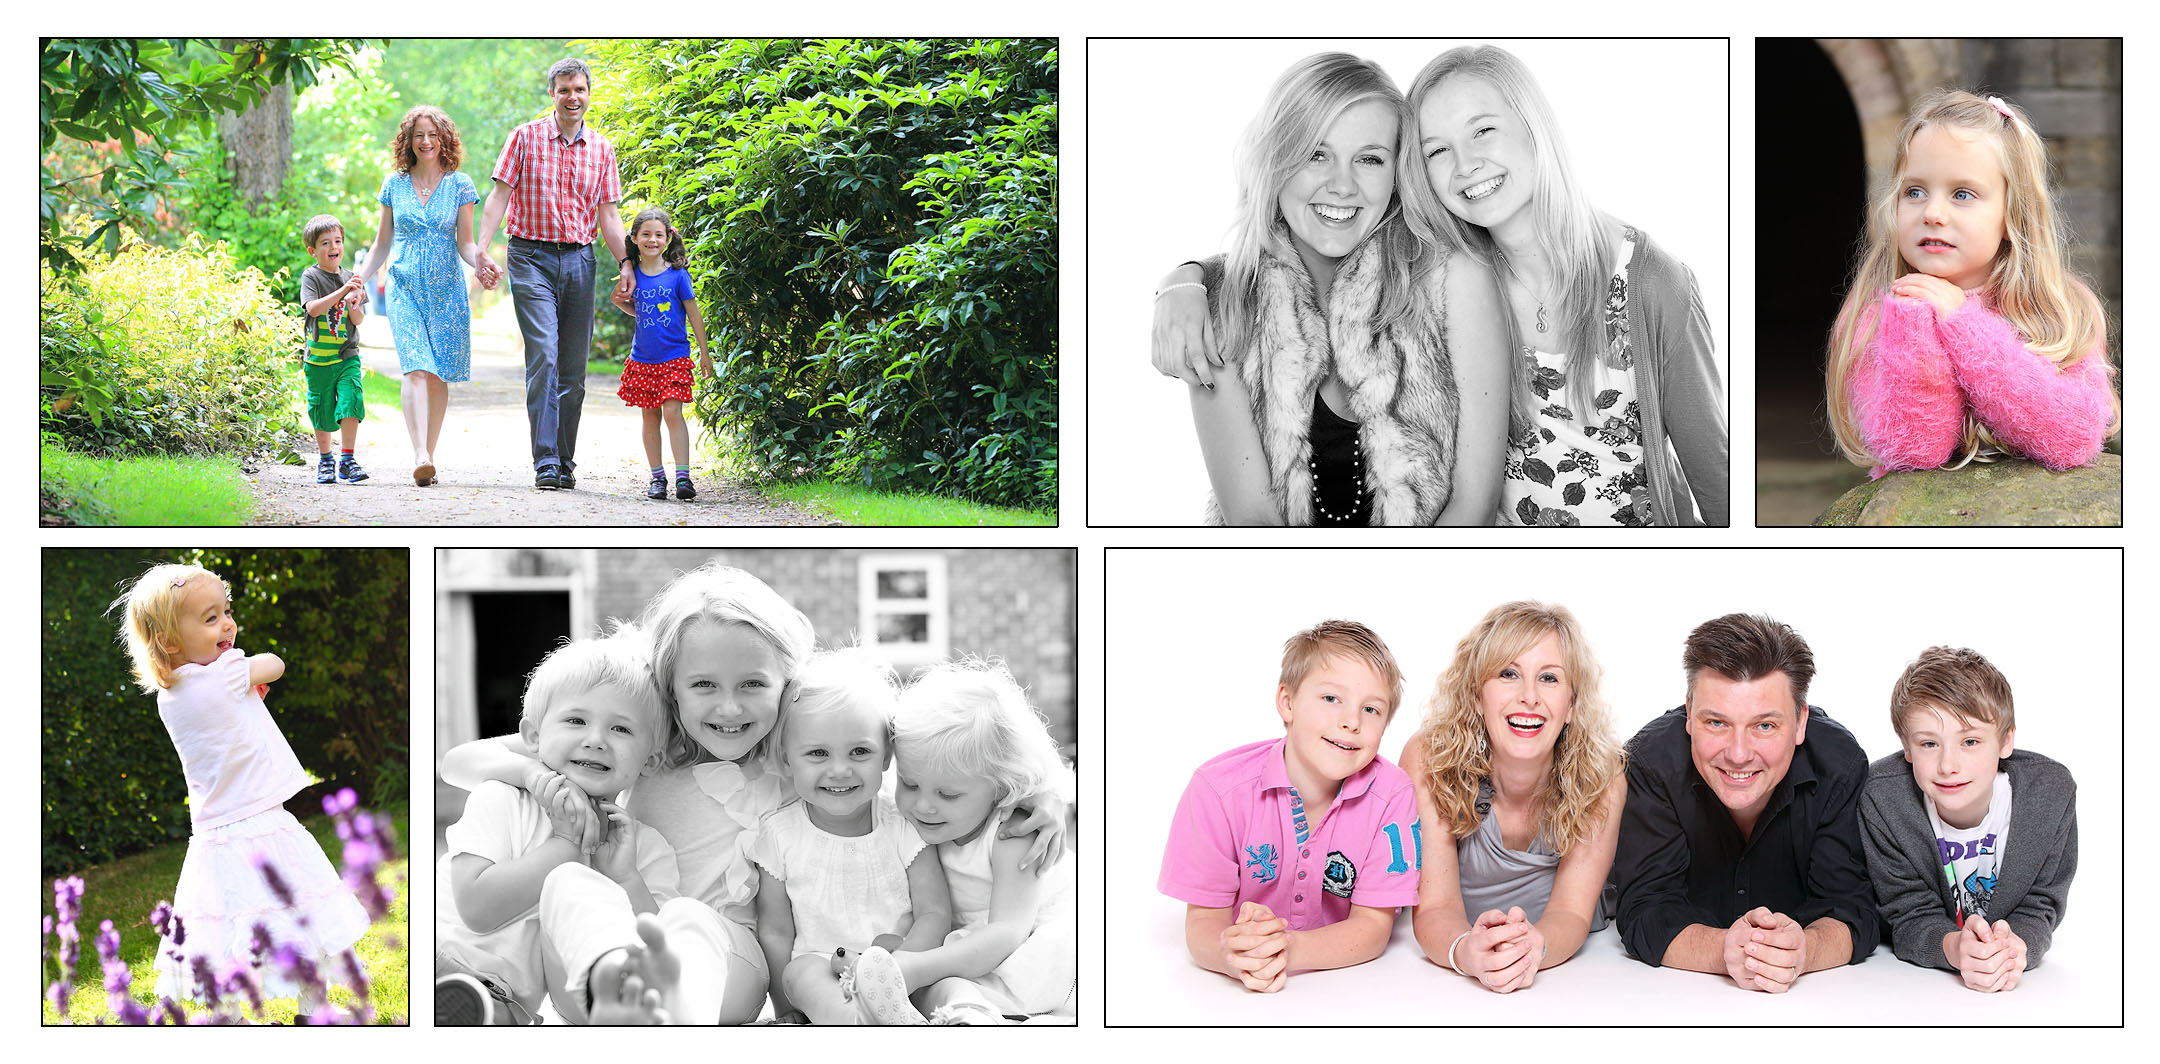 Childrens Portrait Photography In Harrogate, Leeds & York Areas